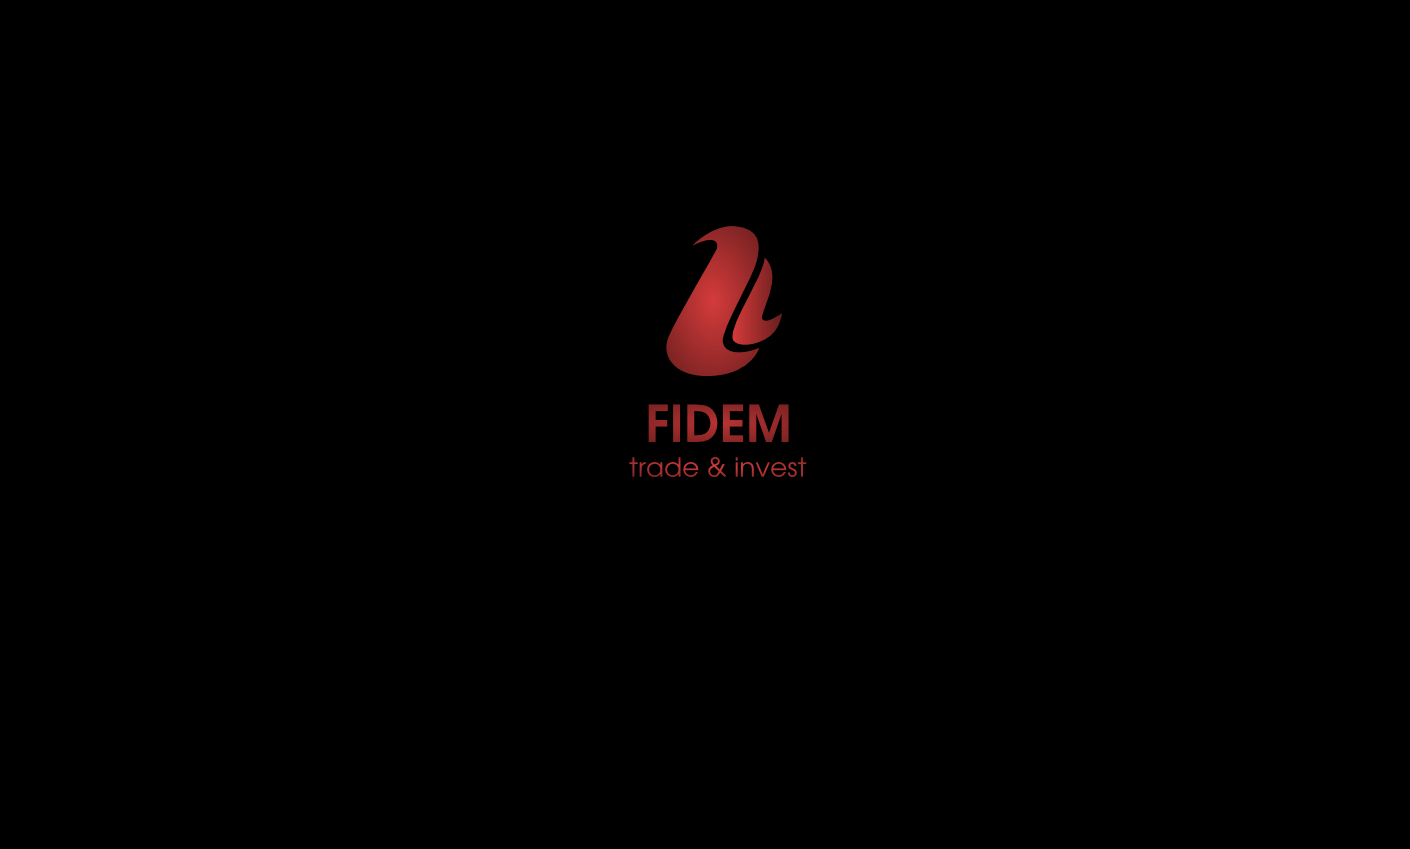 Logo Design by JaroslavProcka - Entry No. 803 in the Logo Design Contest Professional Logo Design for FIDEM Trade & Invest UG.